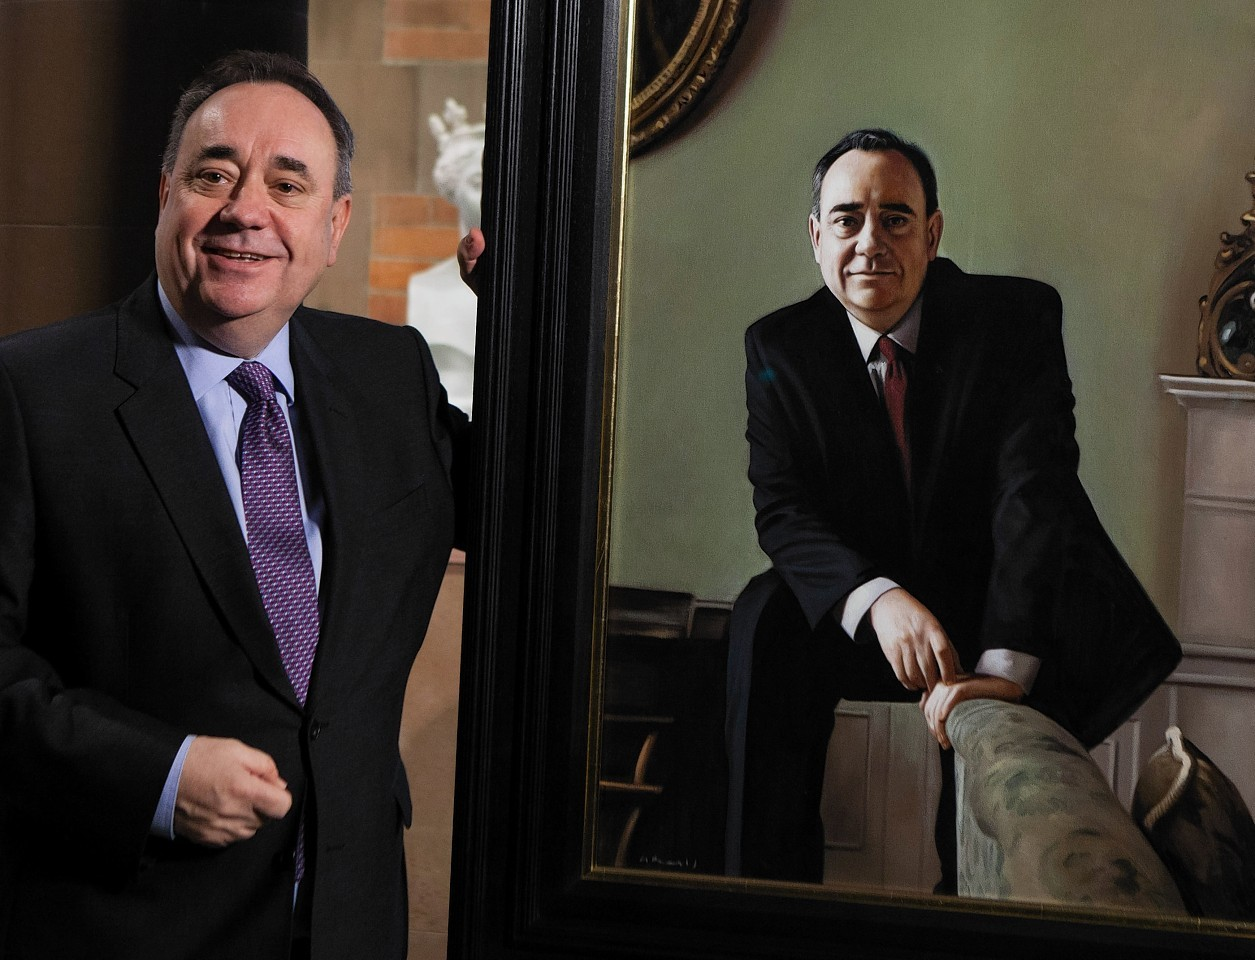 Former First Minister Alex Salmond MP unveils a portrait of himself by Gerard Burns, at the National Galleries of Scotland